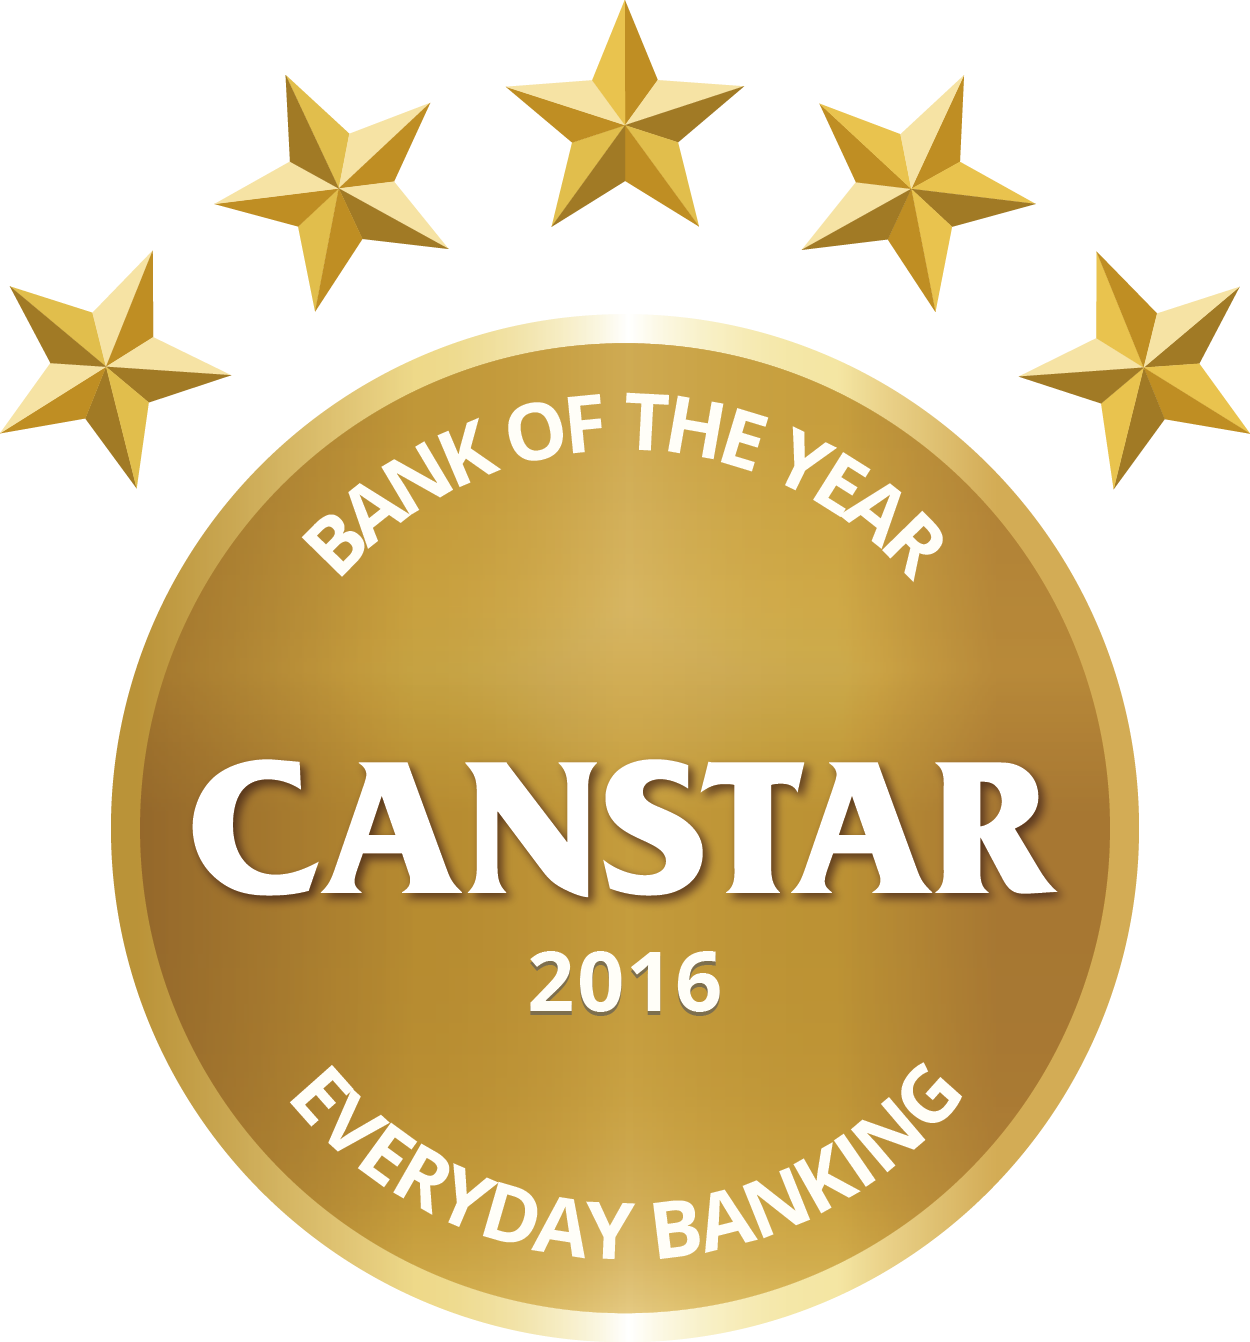 Canstar 2016 – Bank of the Year  – Everyday Banking